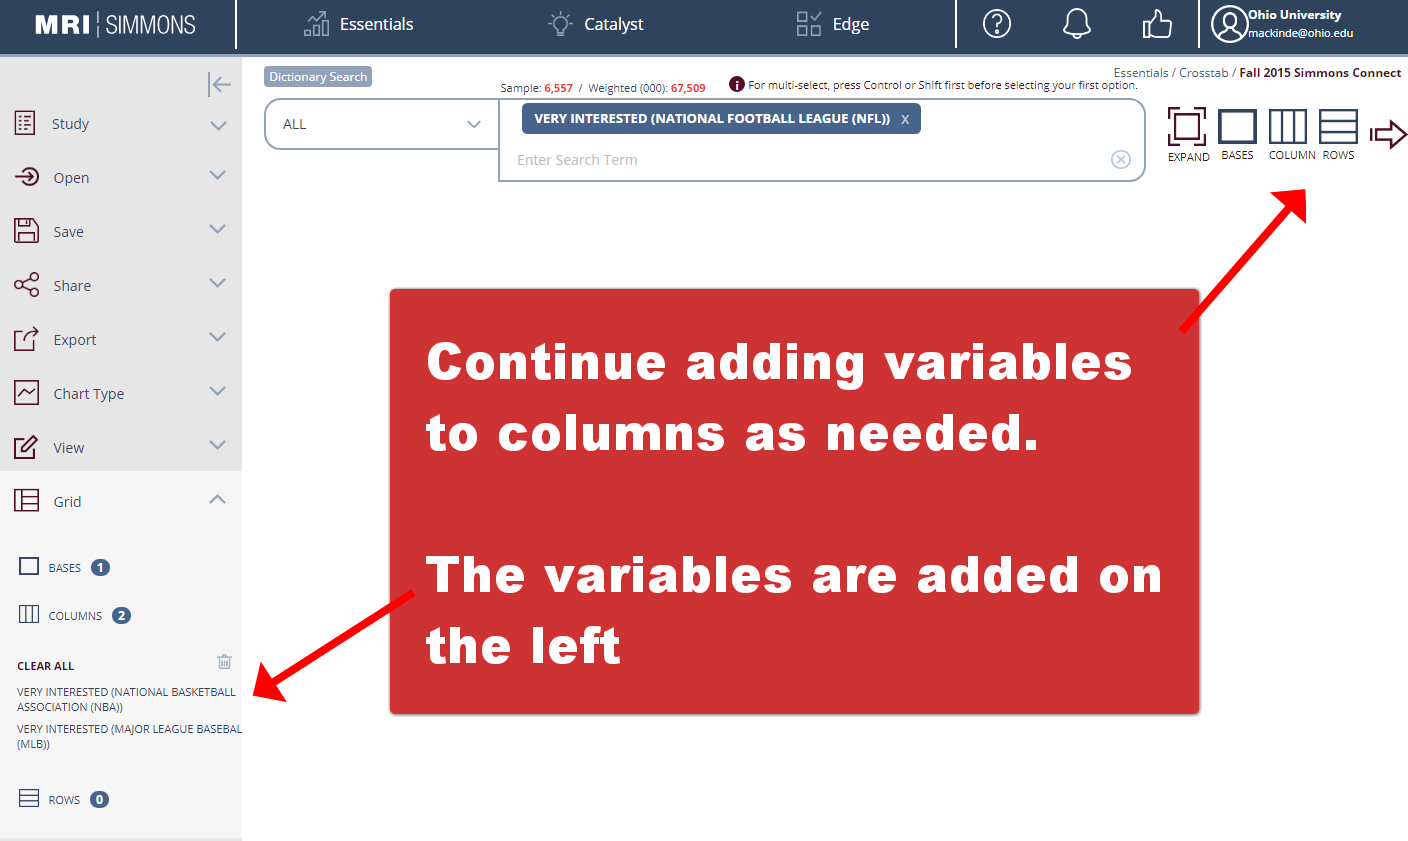 Continue adding variables to columns in Simmons as needed.